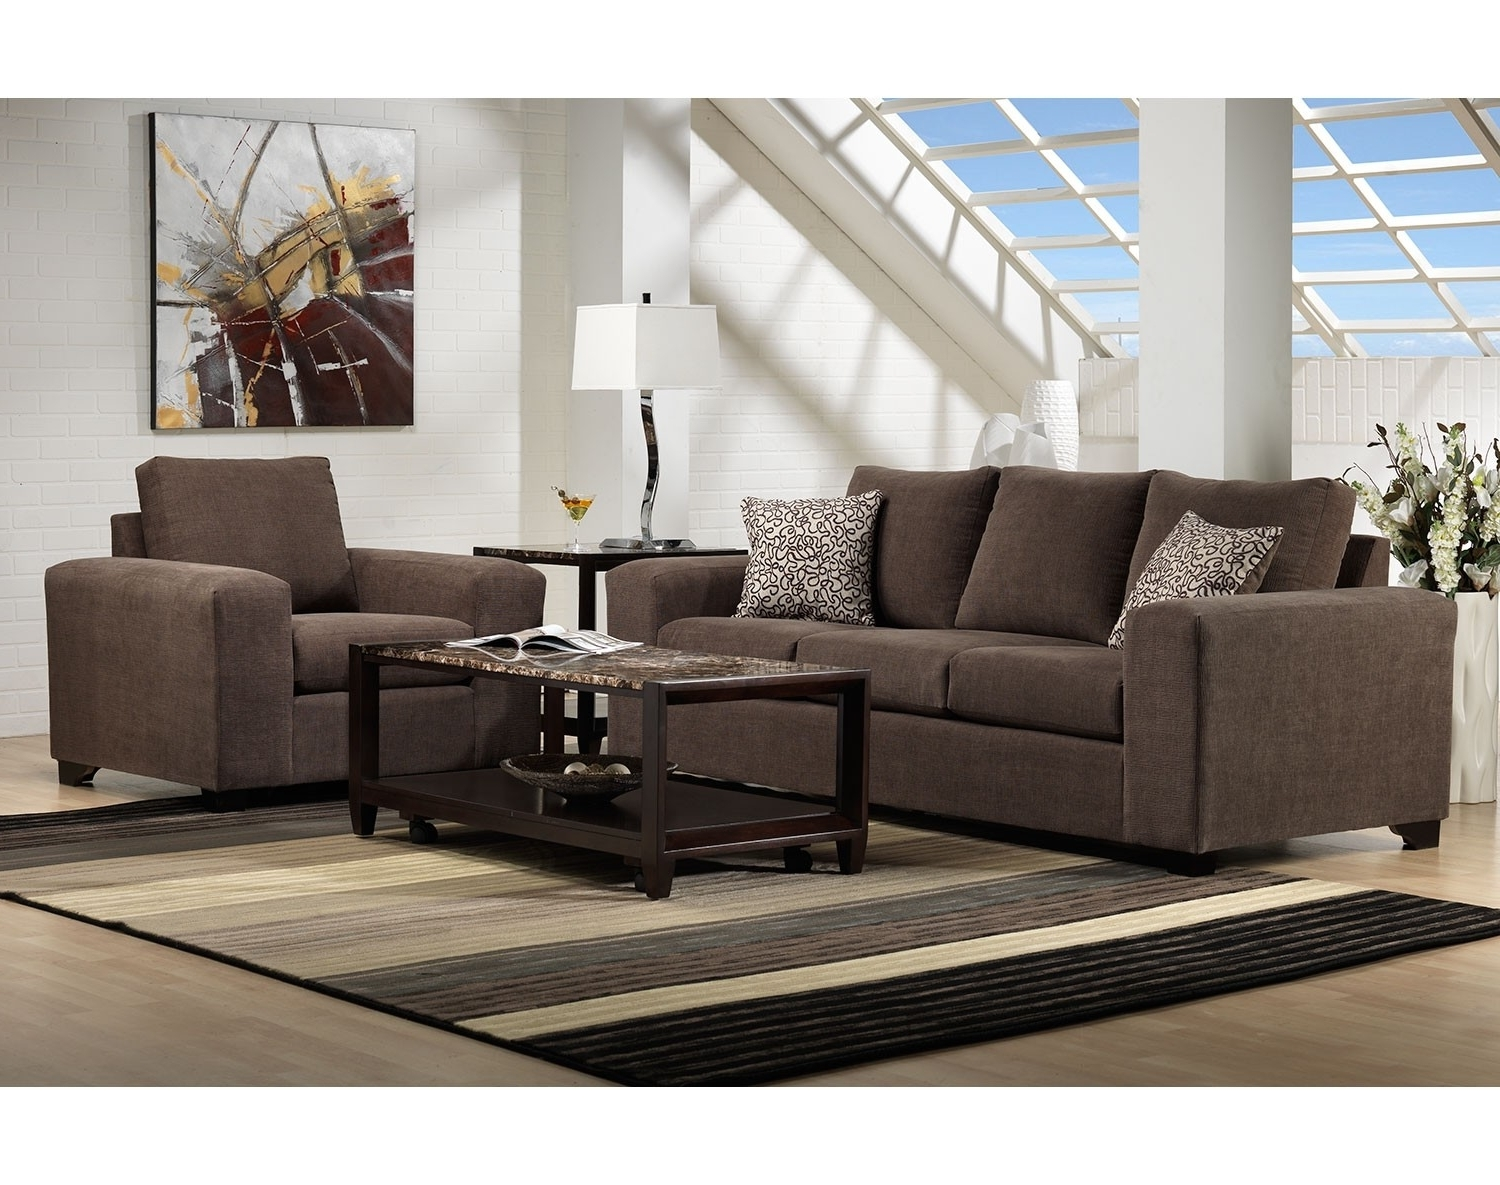 2017 Chaise Lounge Leons Cheap Sofa Edmonton Leons Sectionals Kijiji In Kijiji Edmonton Sectional Sofas (View 1 of 15)